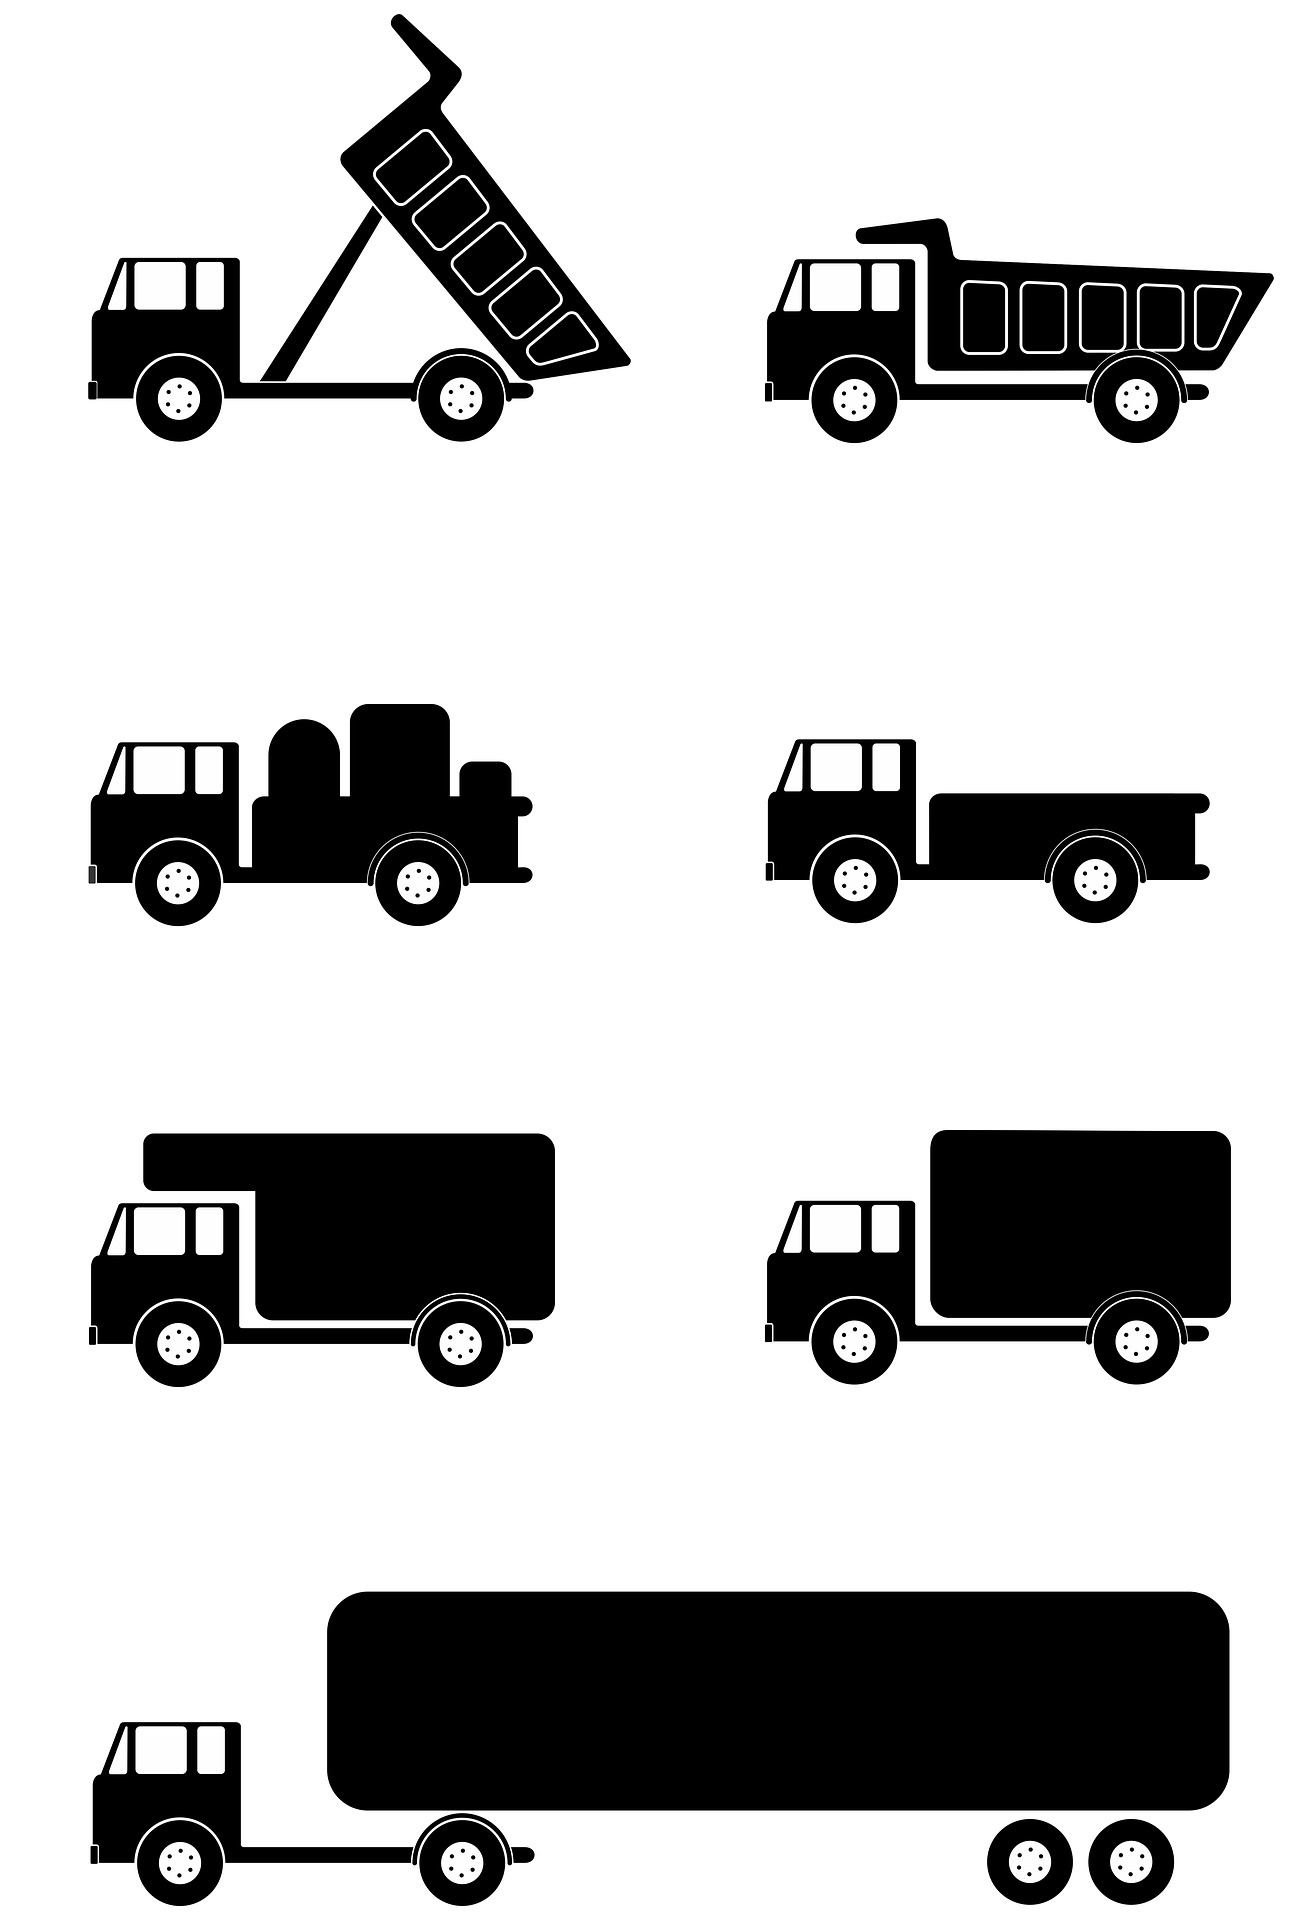 Different-sized vehicles of full service movers